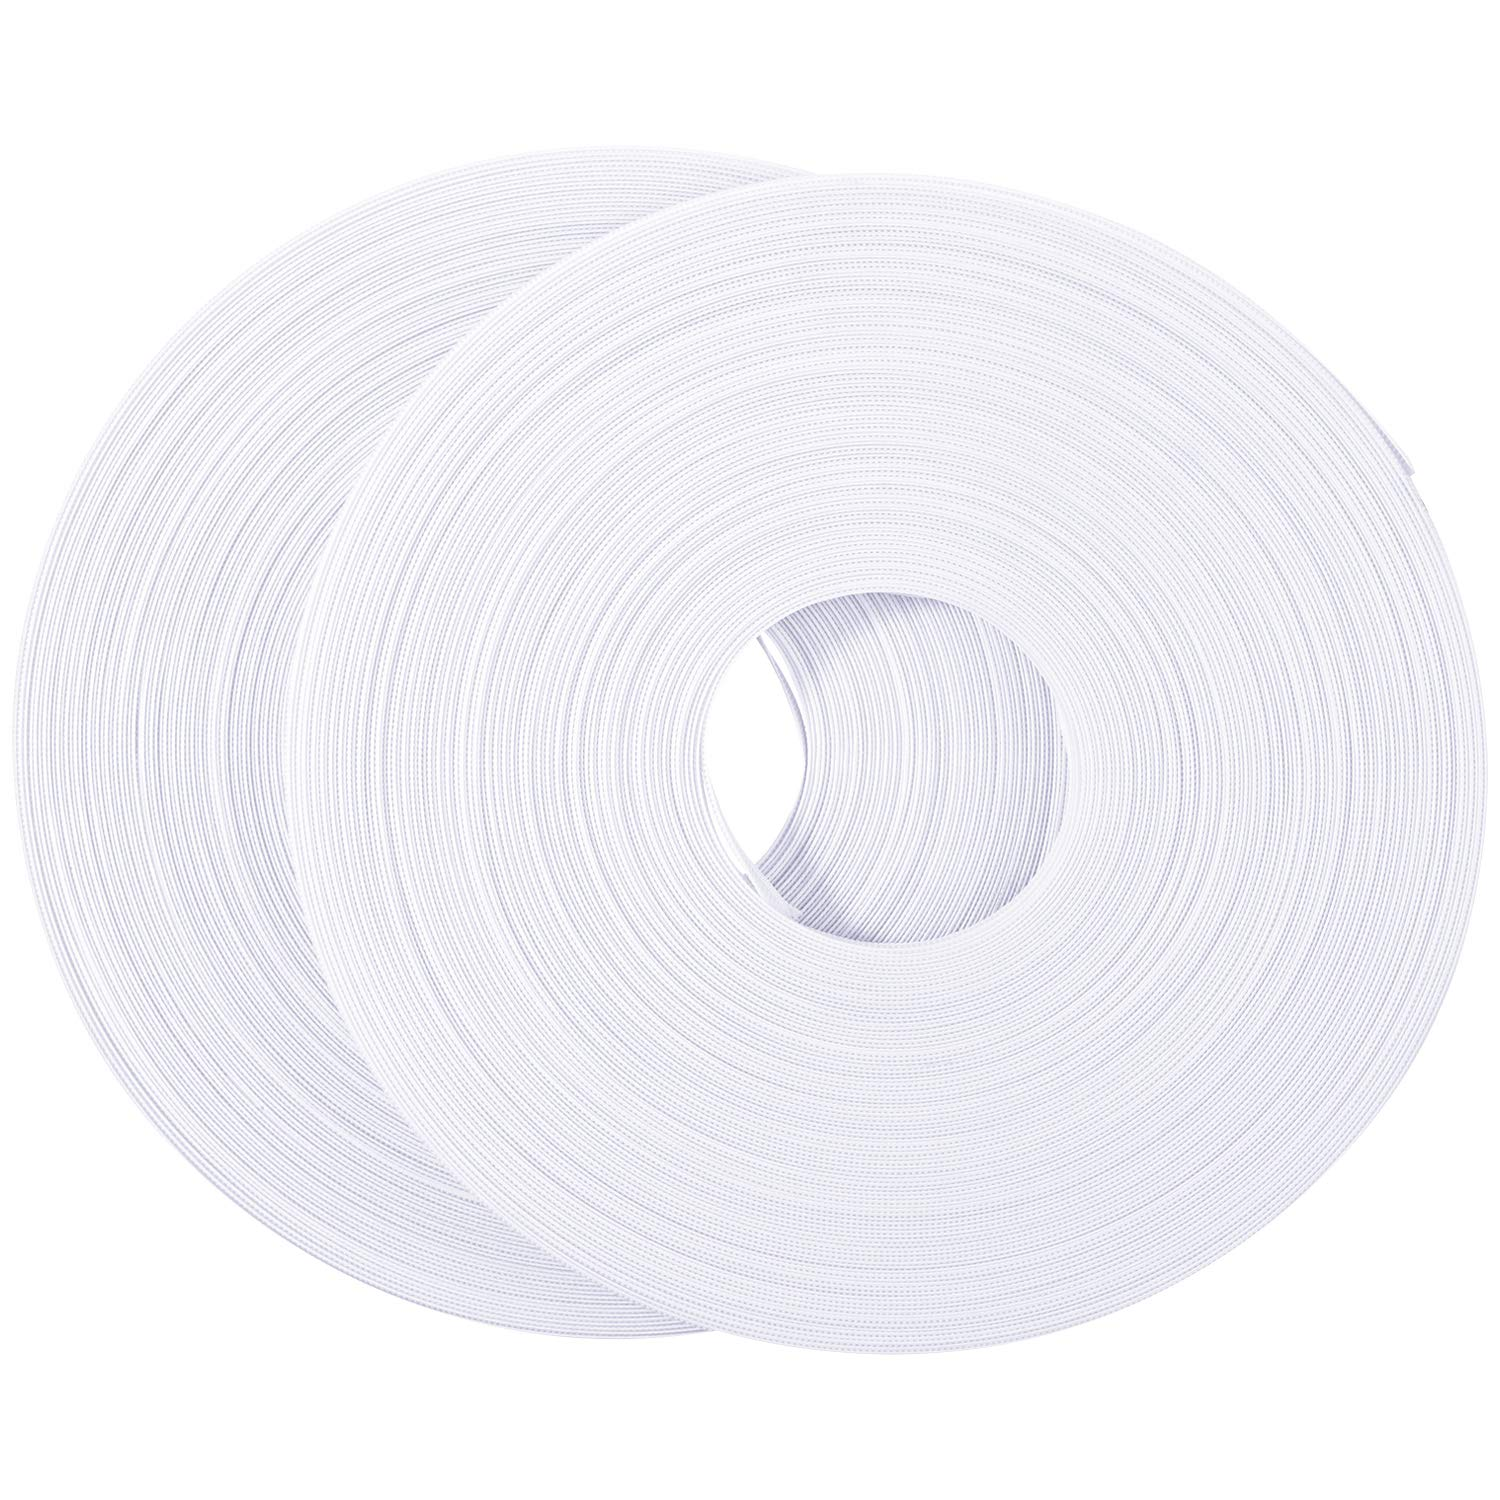 Making Corsets 2 Rolls Bridal Gowns Nursing Caps 50 Yard x 1//2 Inch Polyester Boning White Boning for Sewing